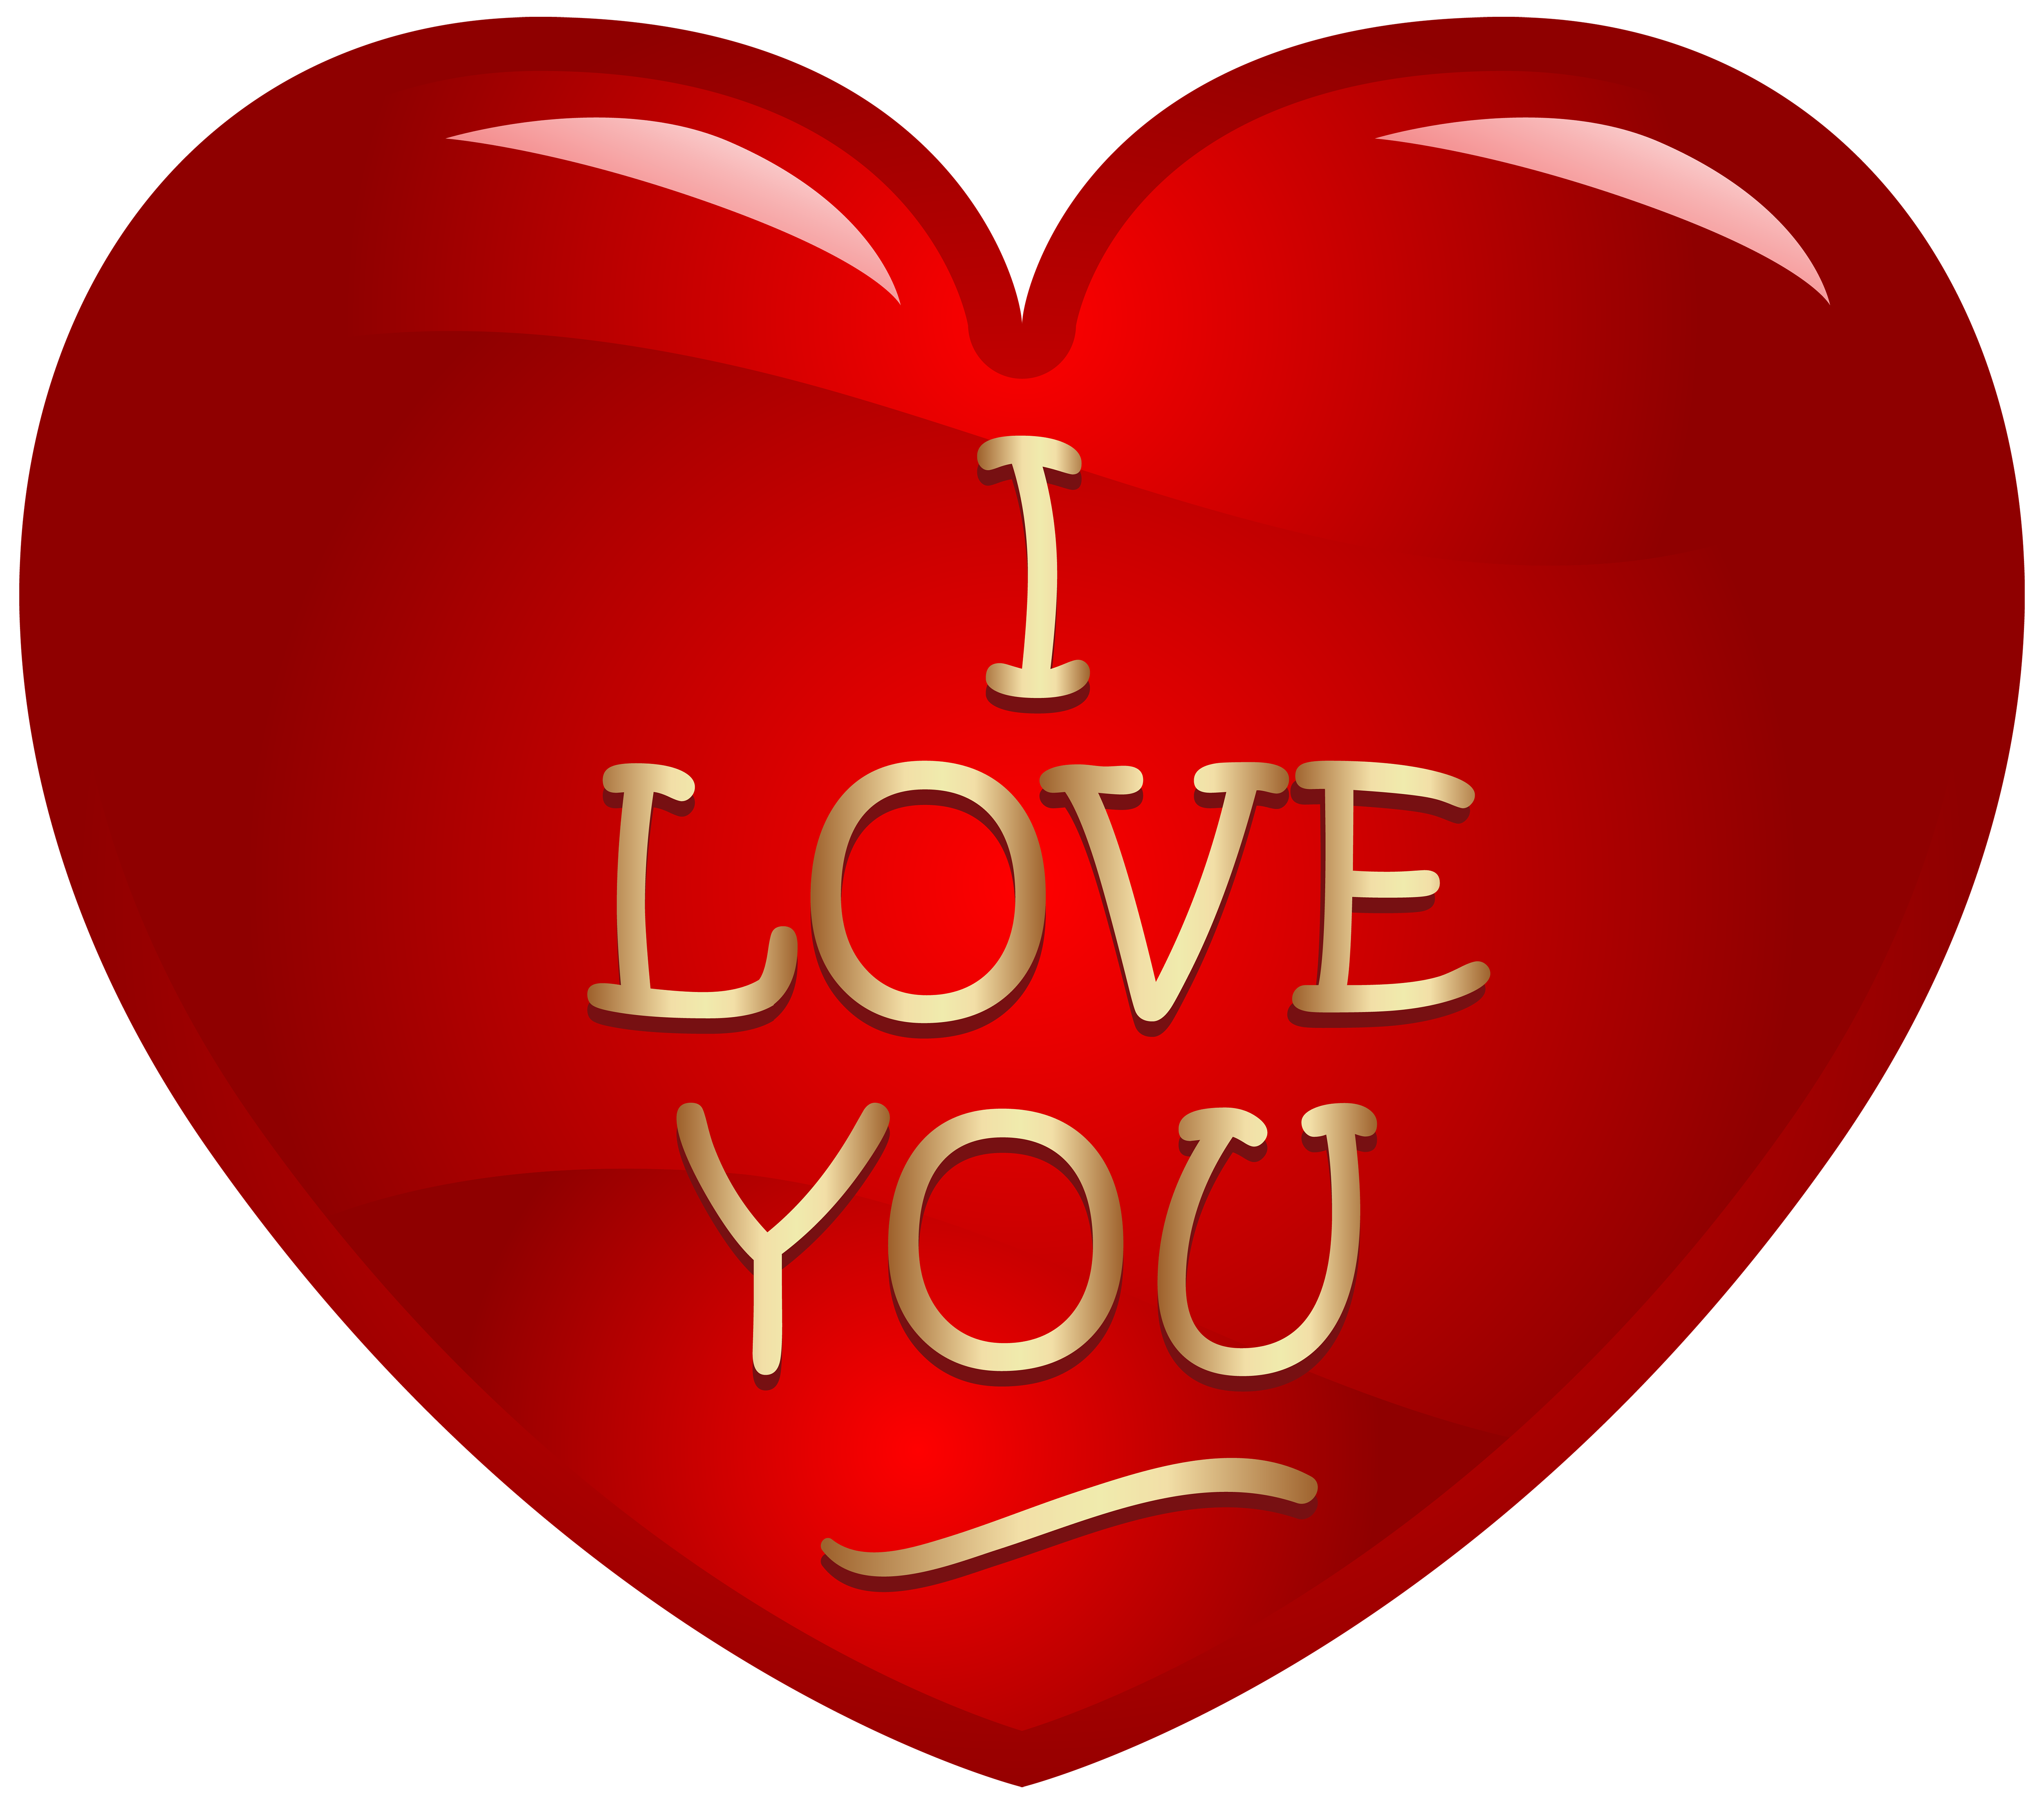 I heart you clipart. Love hearts png